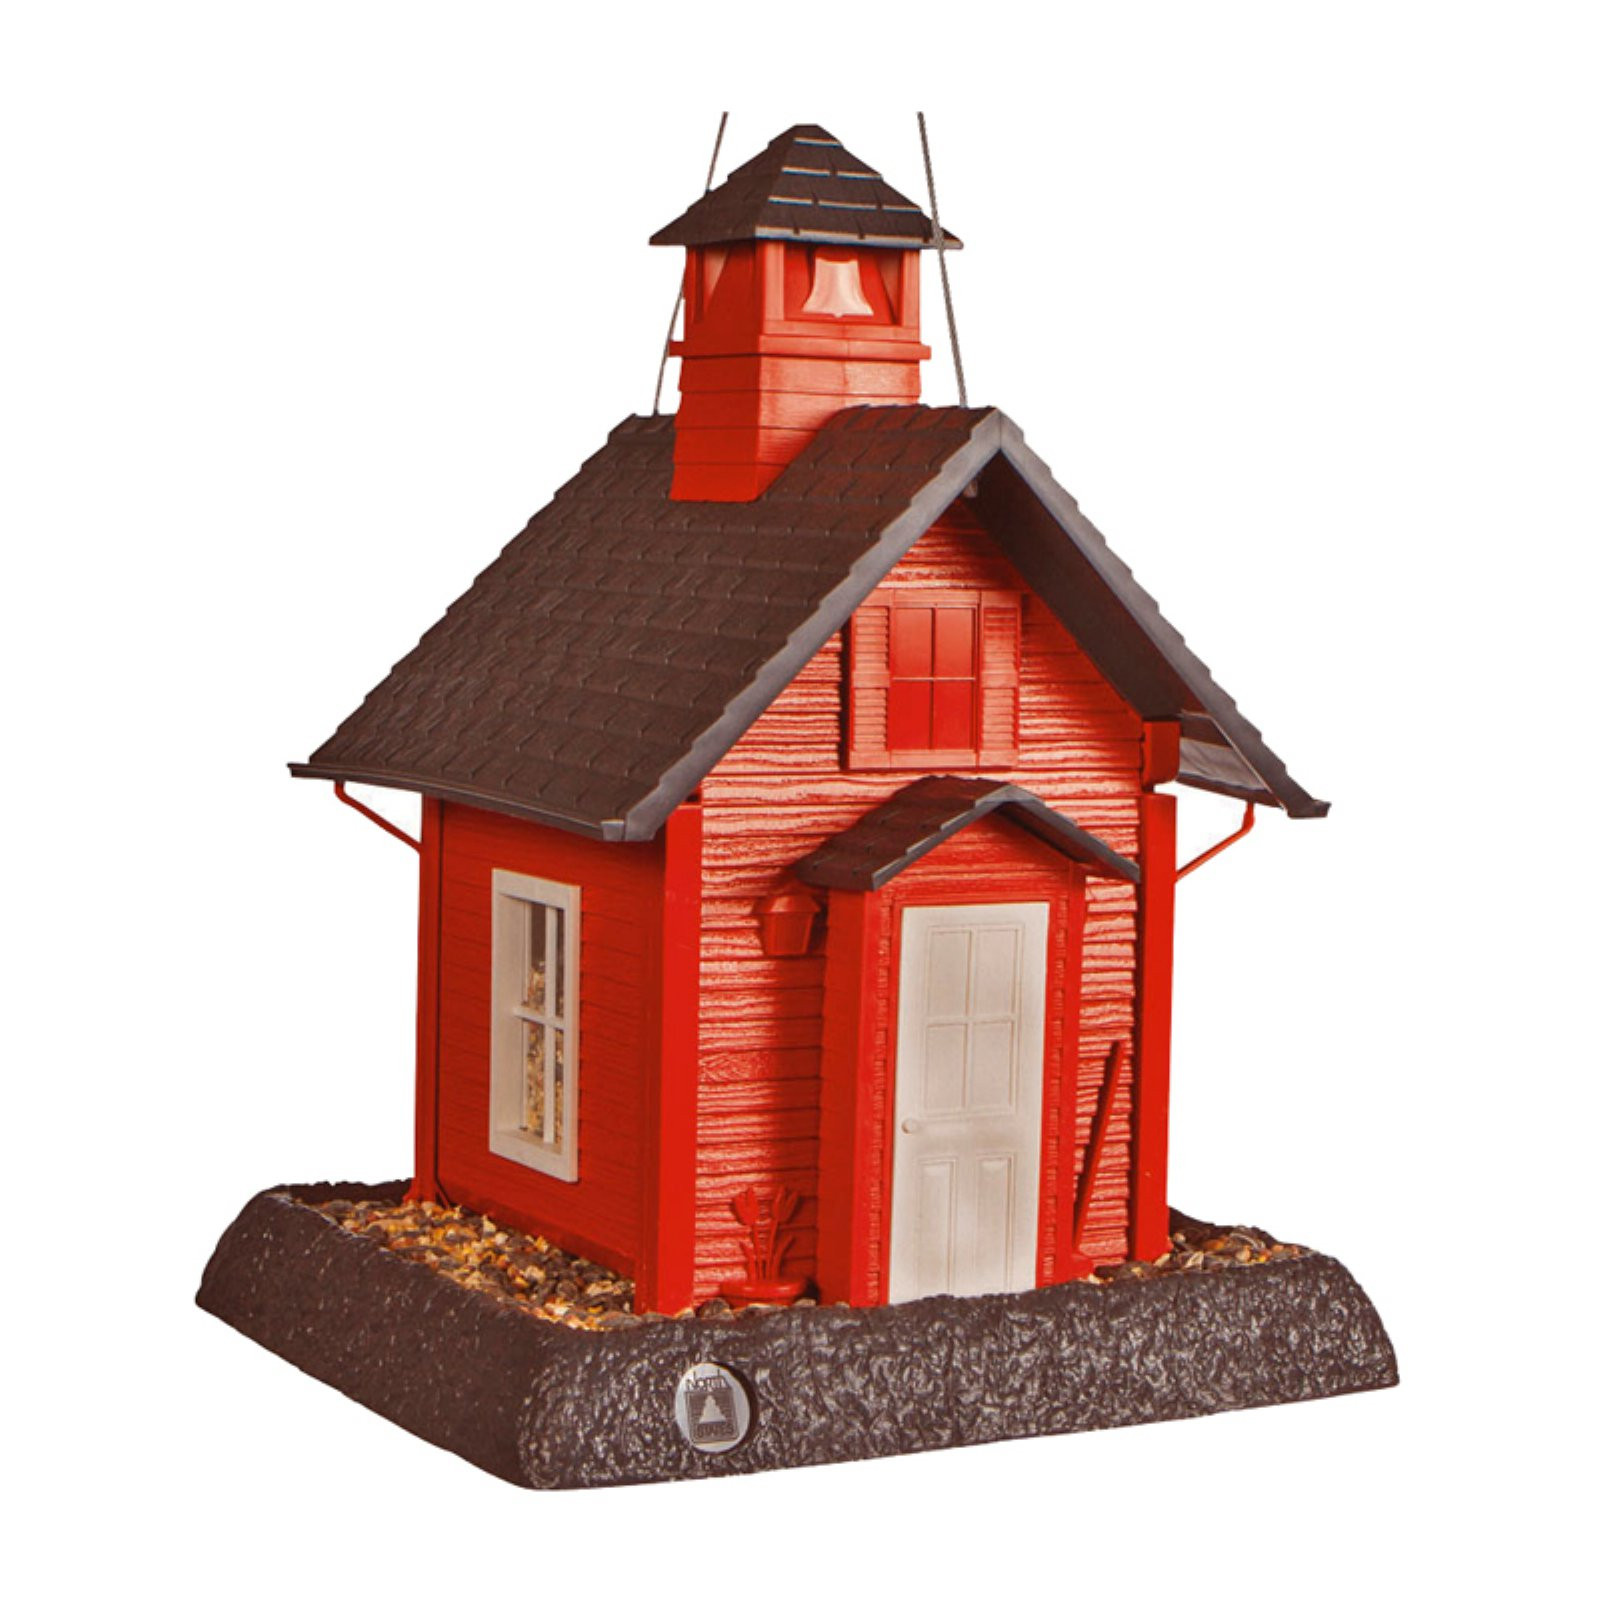 North States 9084 Lil' Red School House Village Collection Bird Feeder